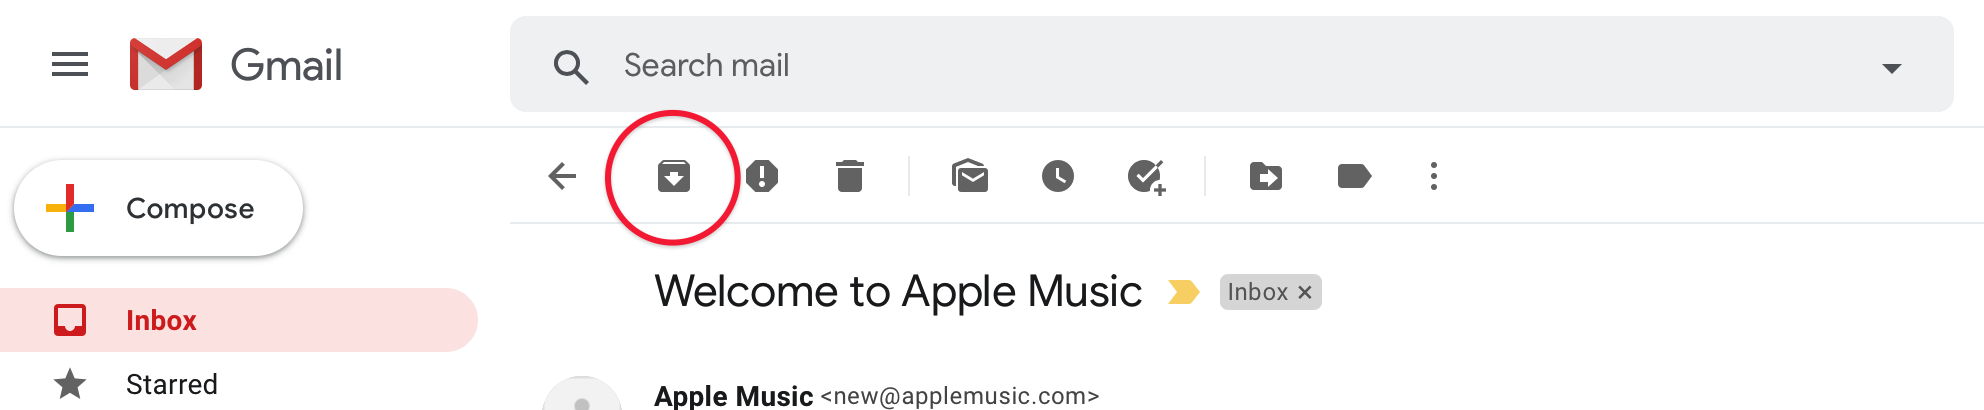 Archive emails in Gmail screenshot